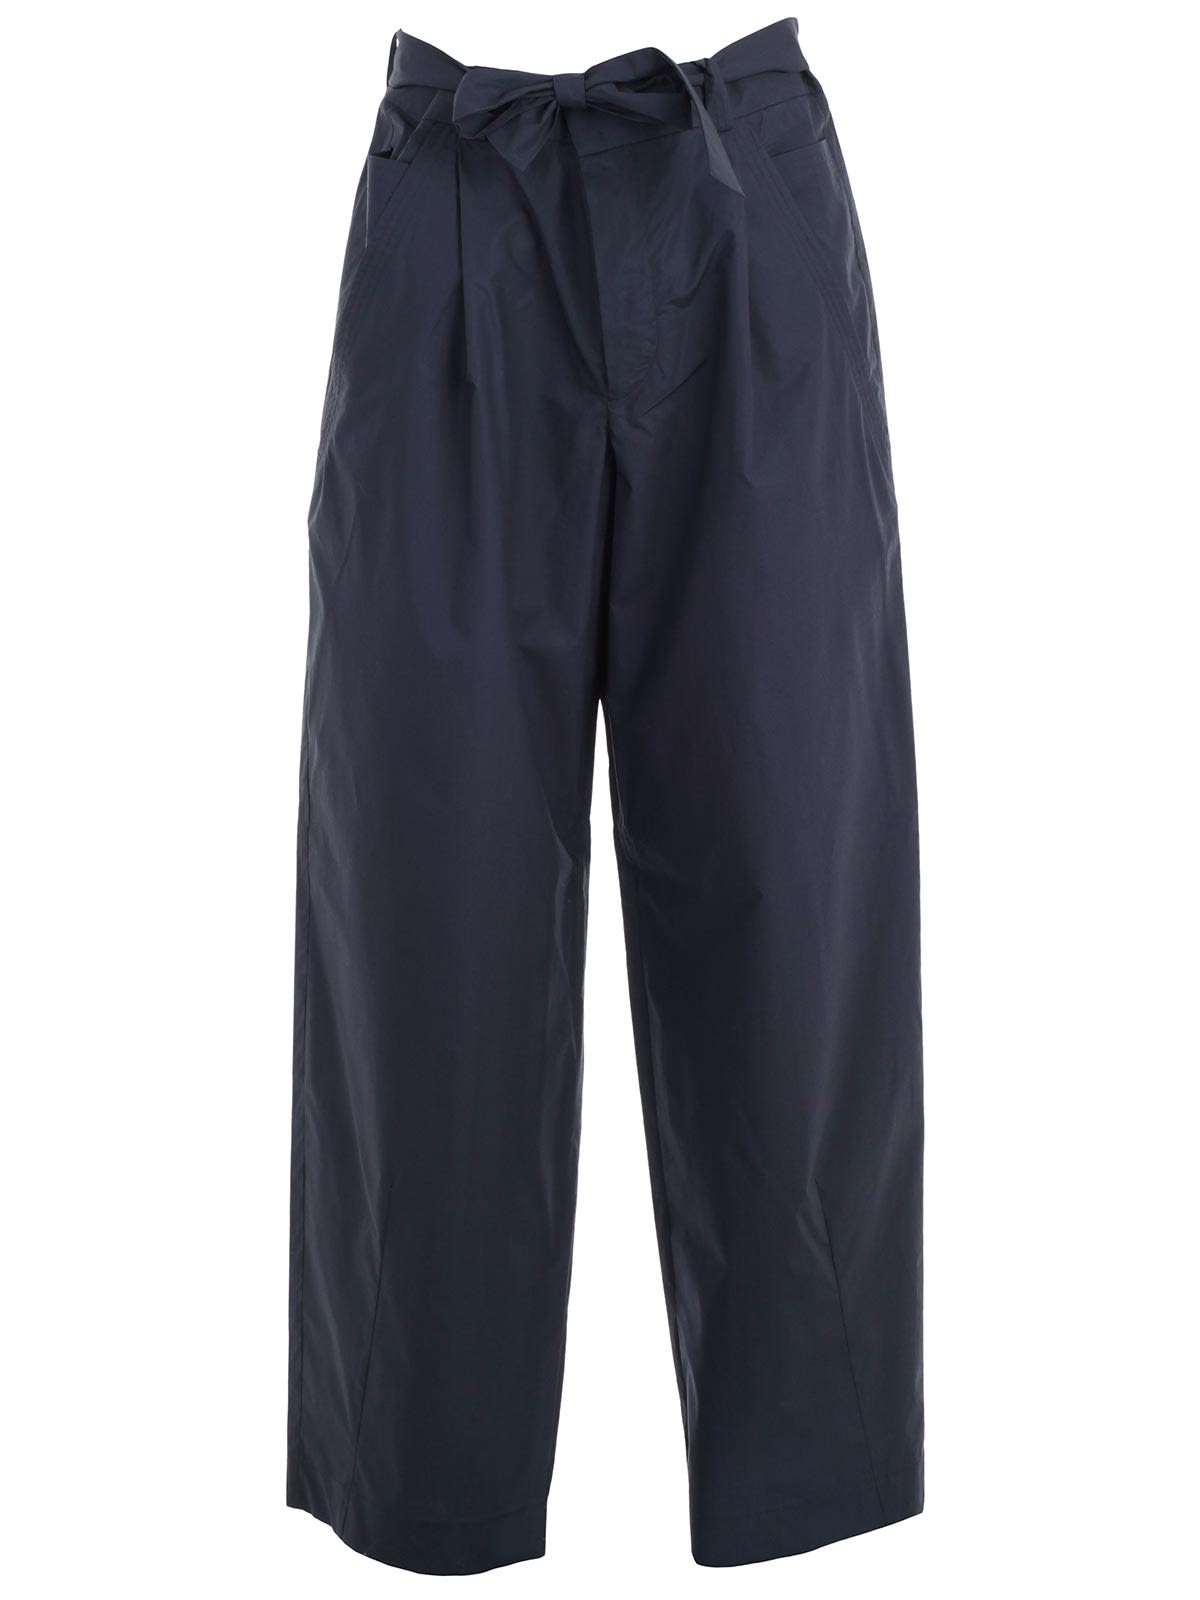 Maison Flaneur Cropped Trousers